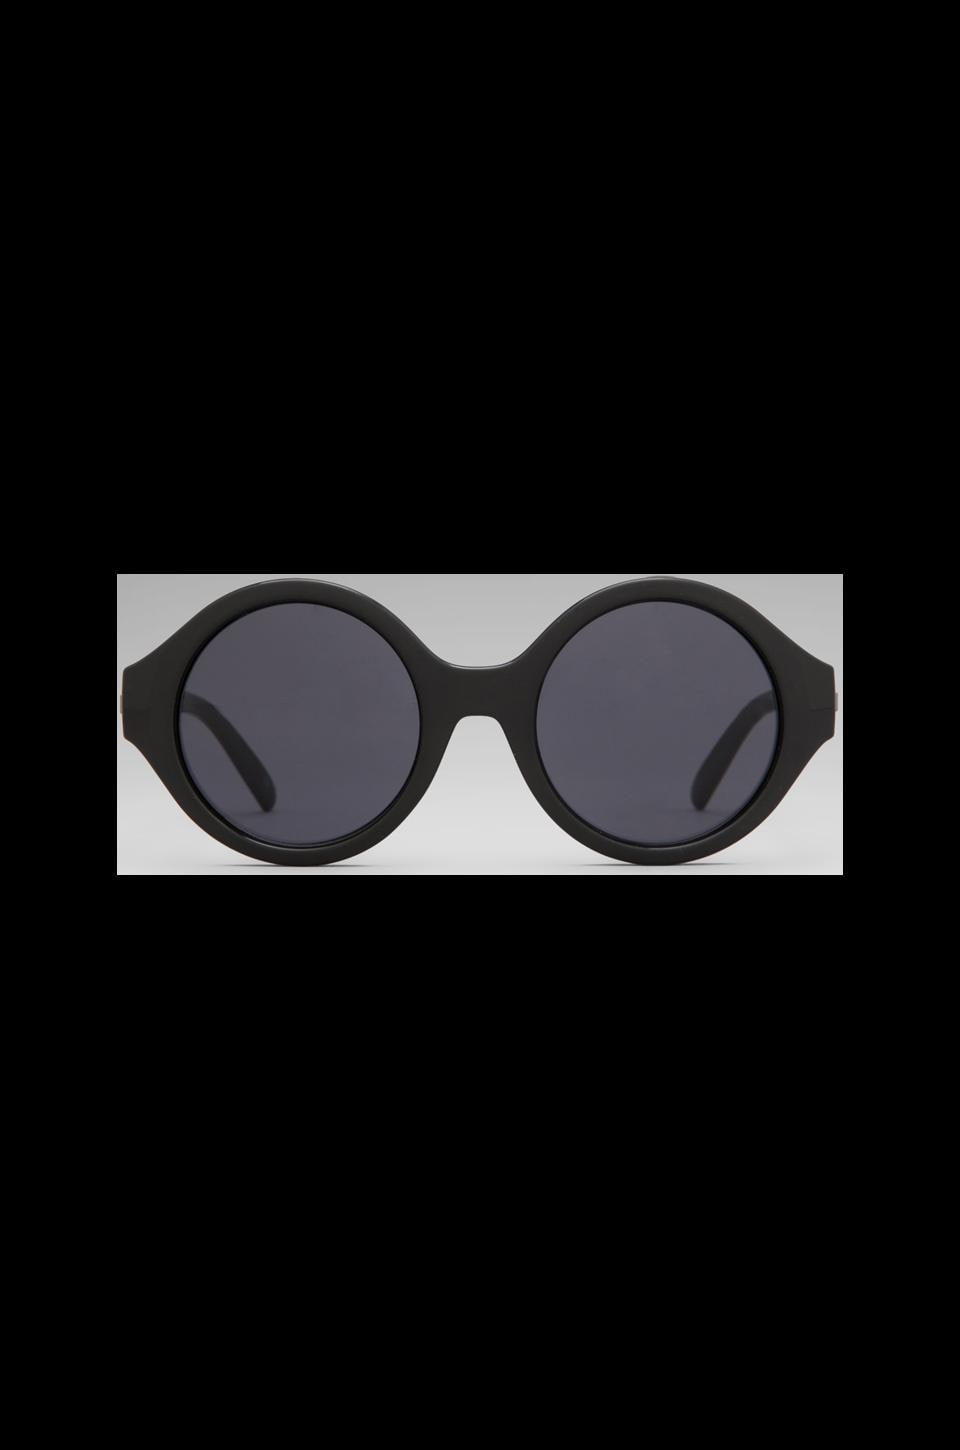 Le Specs The Dandy in Matte Black/ Smoke Mono